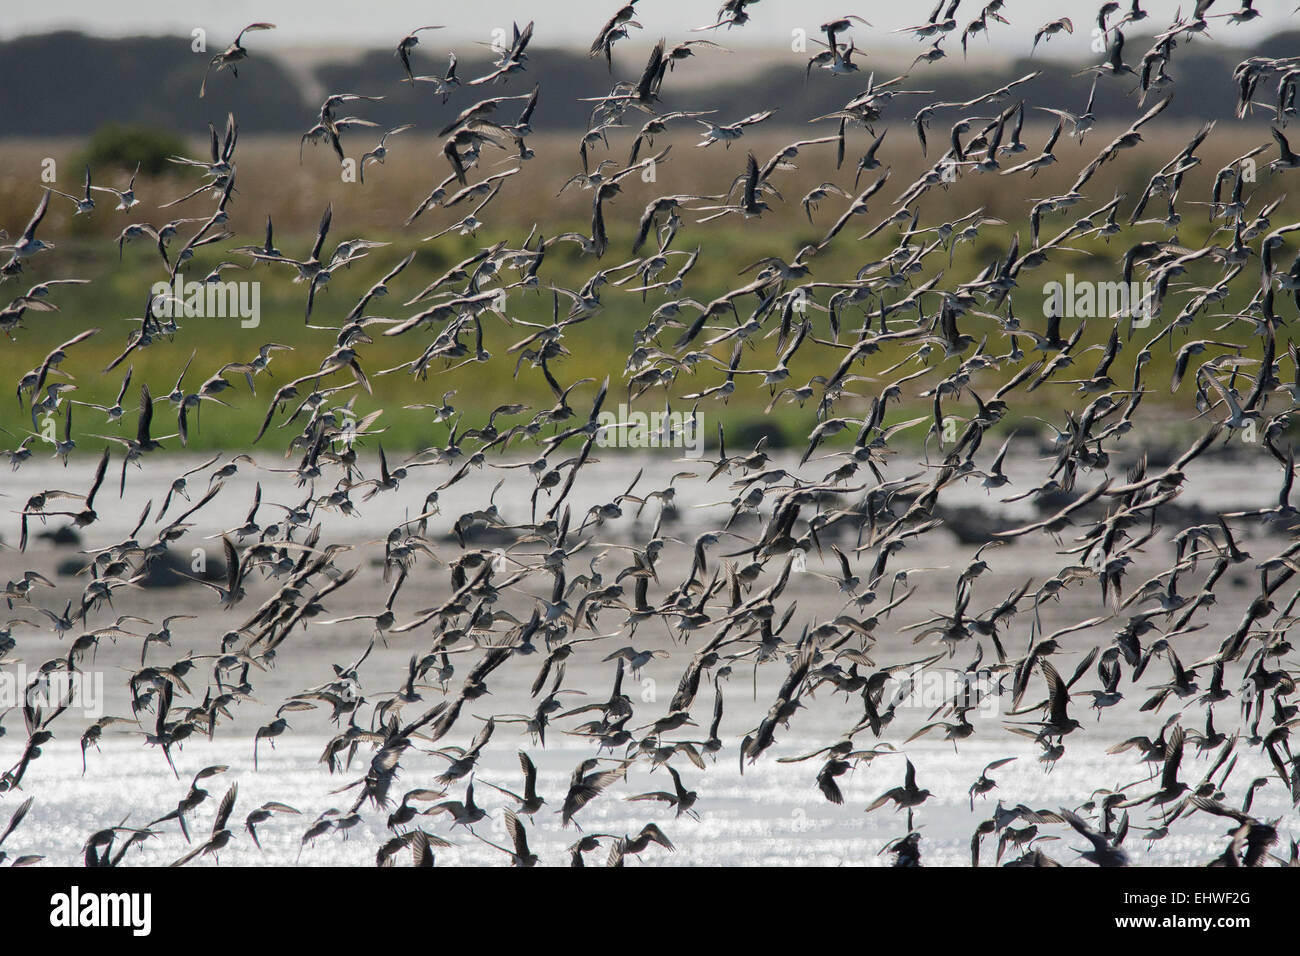 Sandpipers - Stock Image